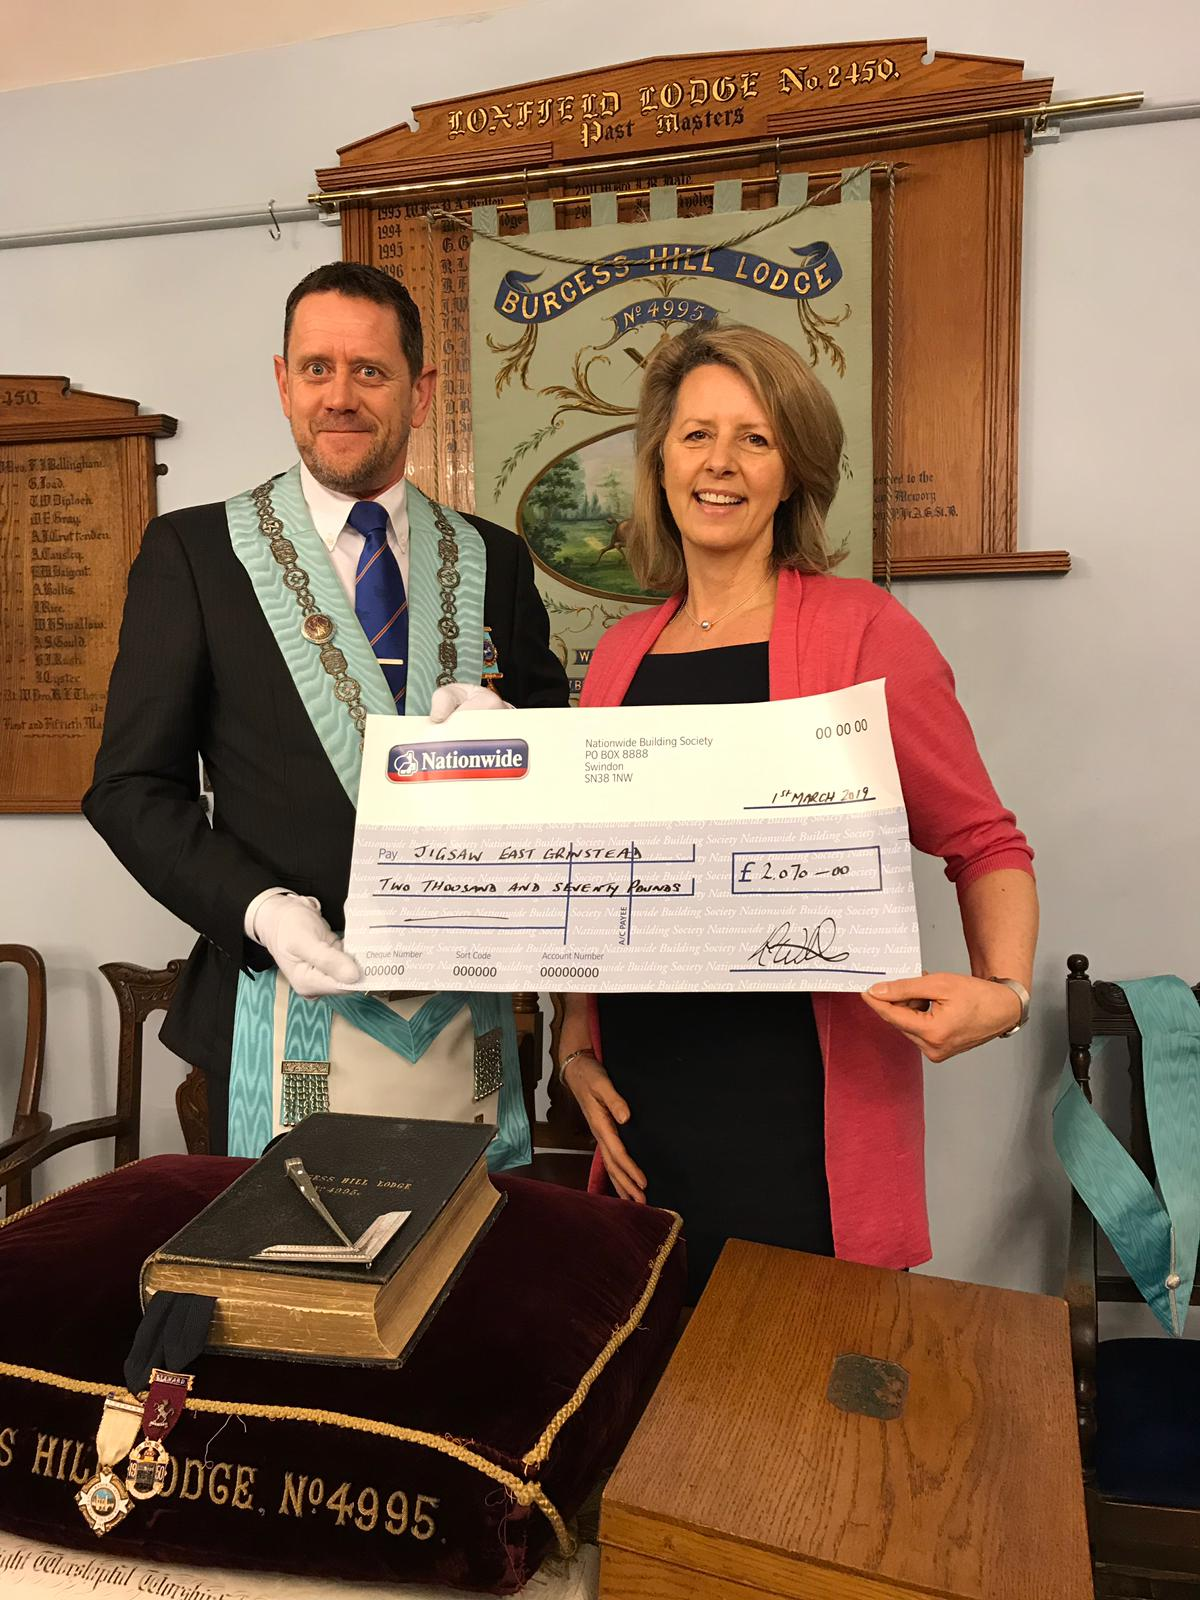 Burgess Hill Masons Lodge Their Support For Jigsaw